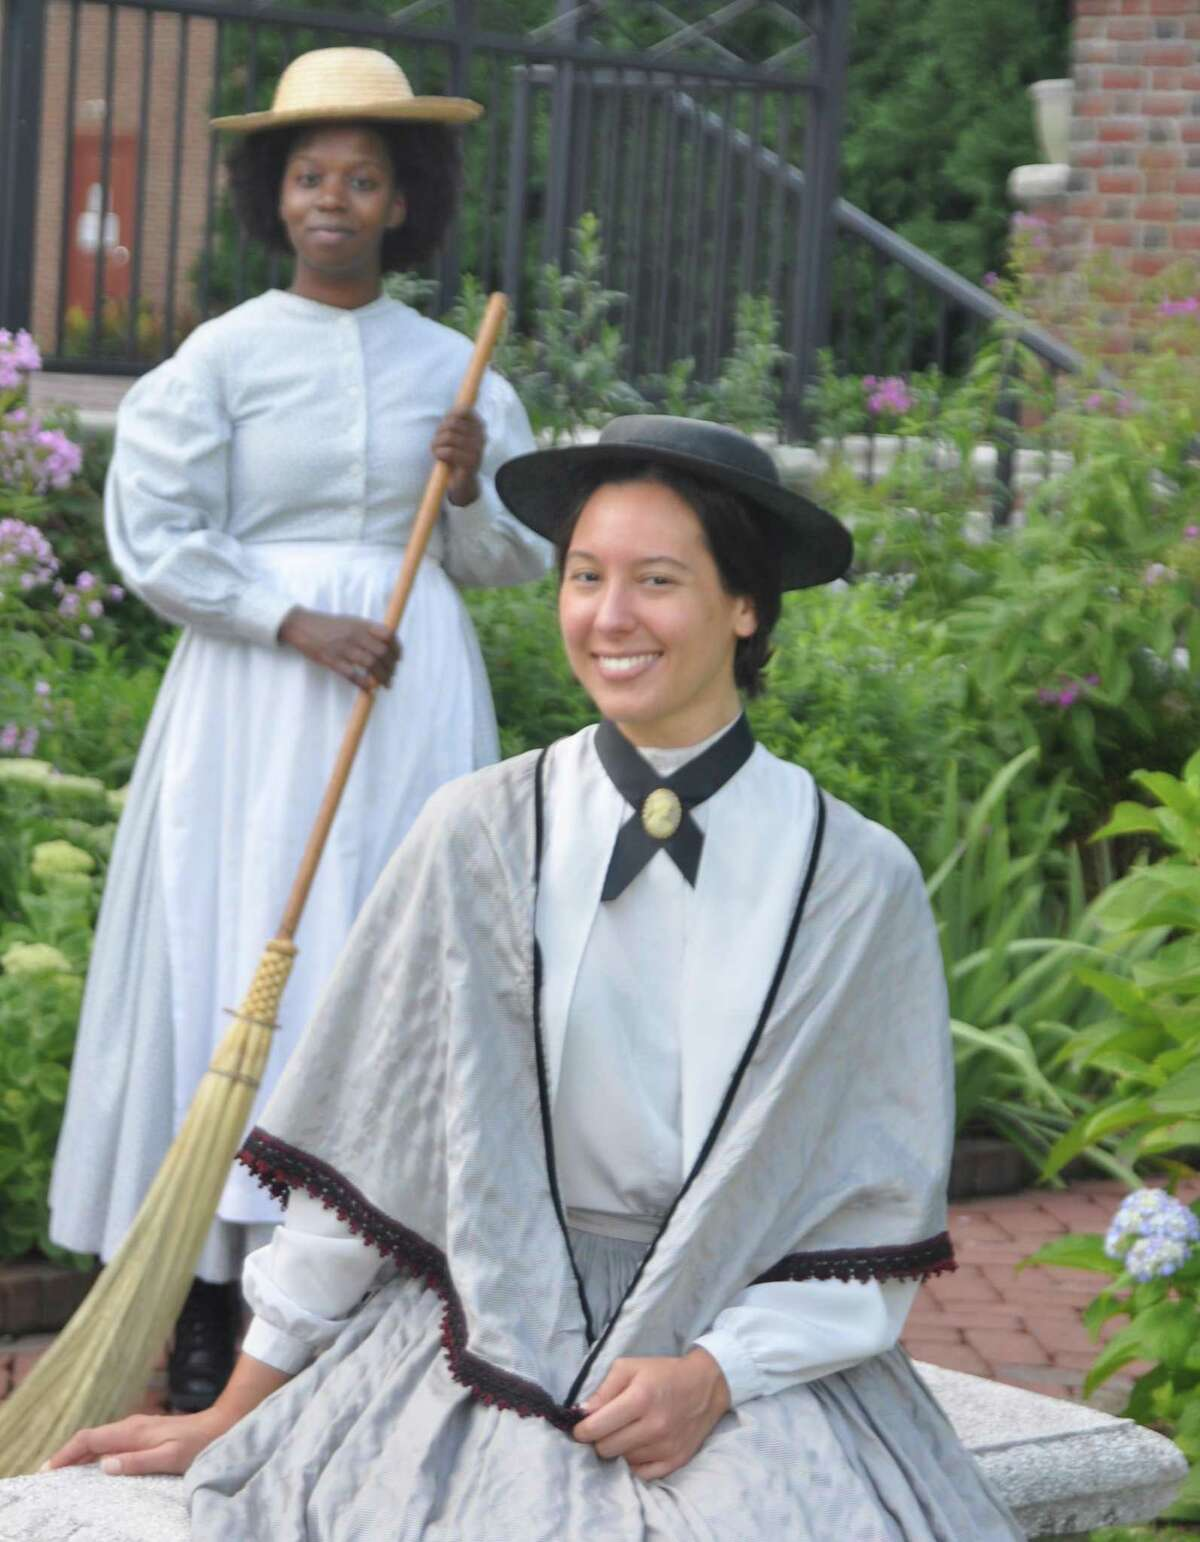 Sisters focuses on the relationship between Anna Marie Resseguie, played by Catherine Luciani, and Phillis DuBois, played by Valerie Brookshire, who together ran the Ressequie Hotel for most of the 19th Centuryin the building that is today the Keeler Tavern Museum.